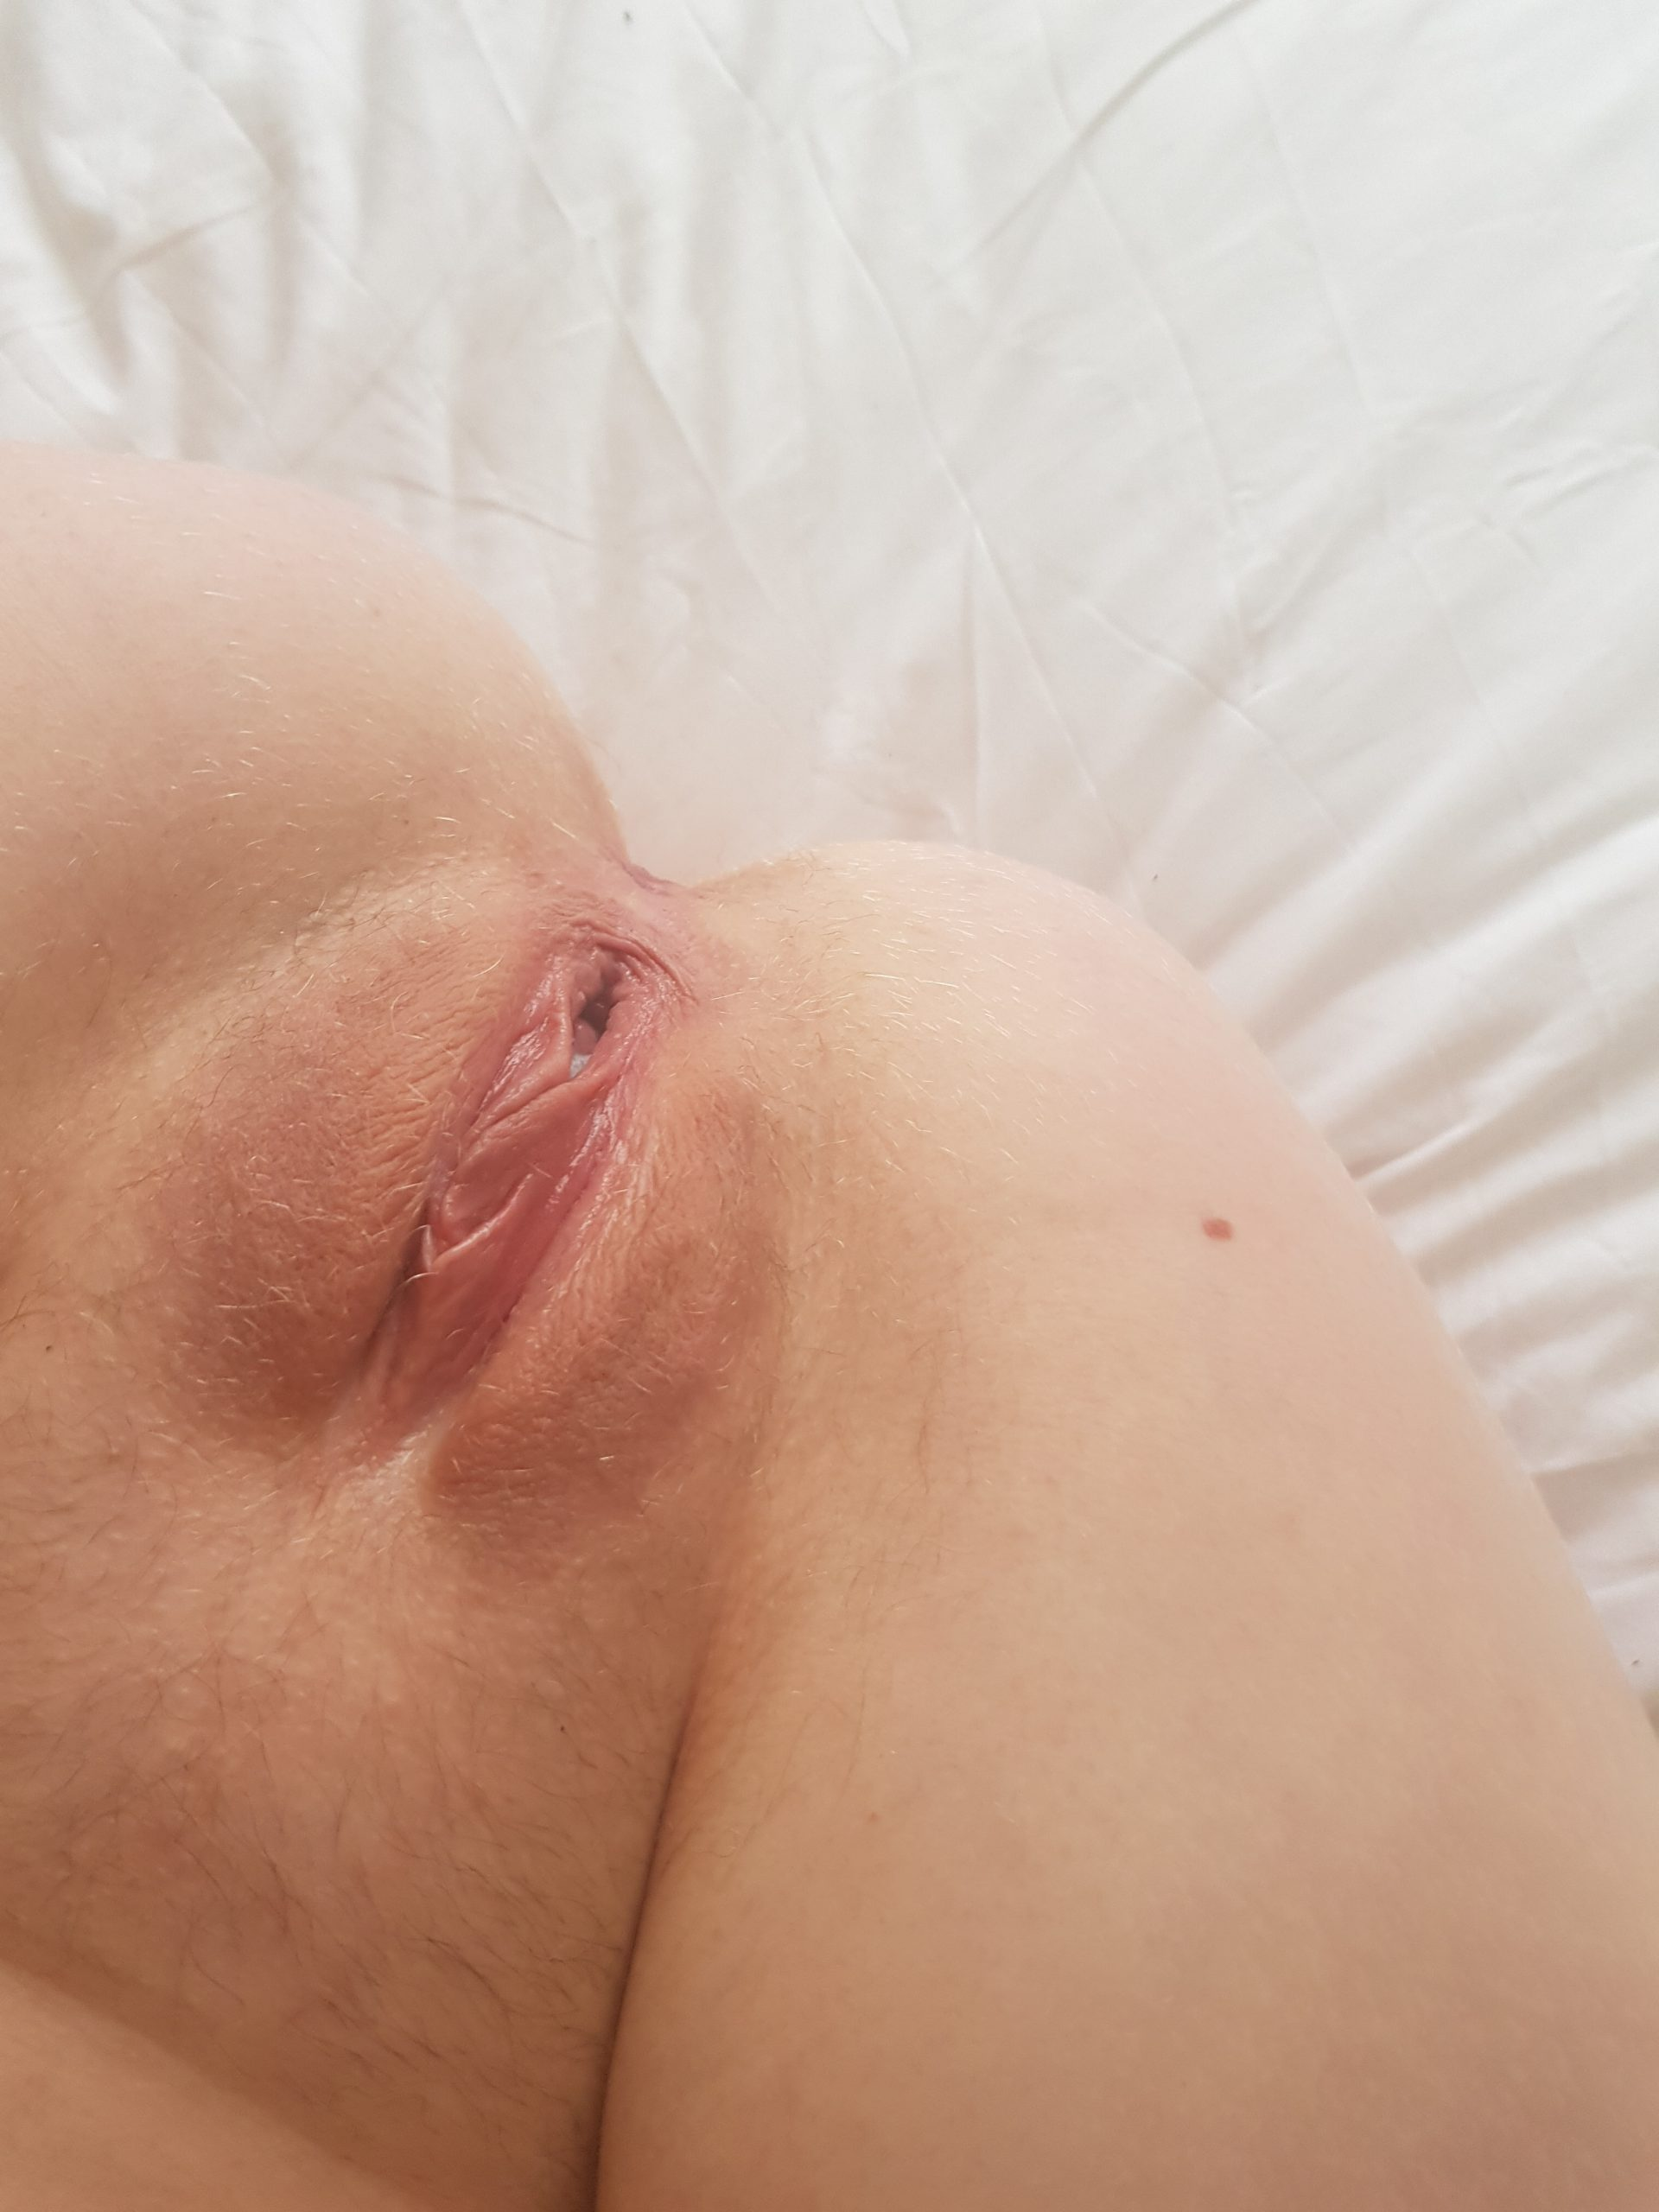 Kittyf Selfie 1 Ersties.com Intimate Moments Angel Like And Penchant For Pain (5)